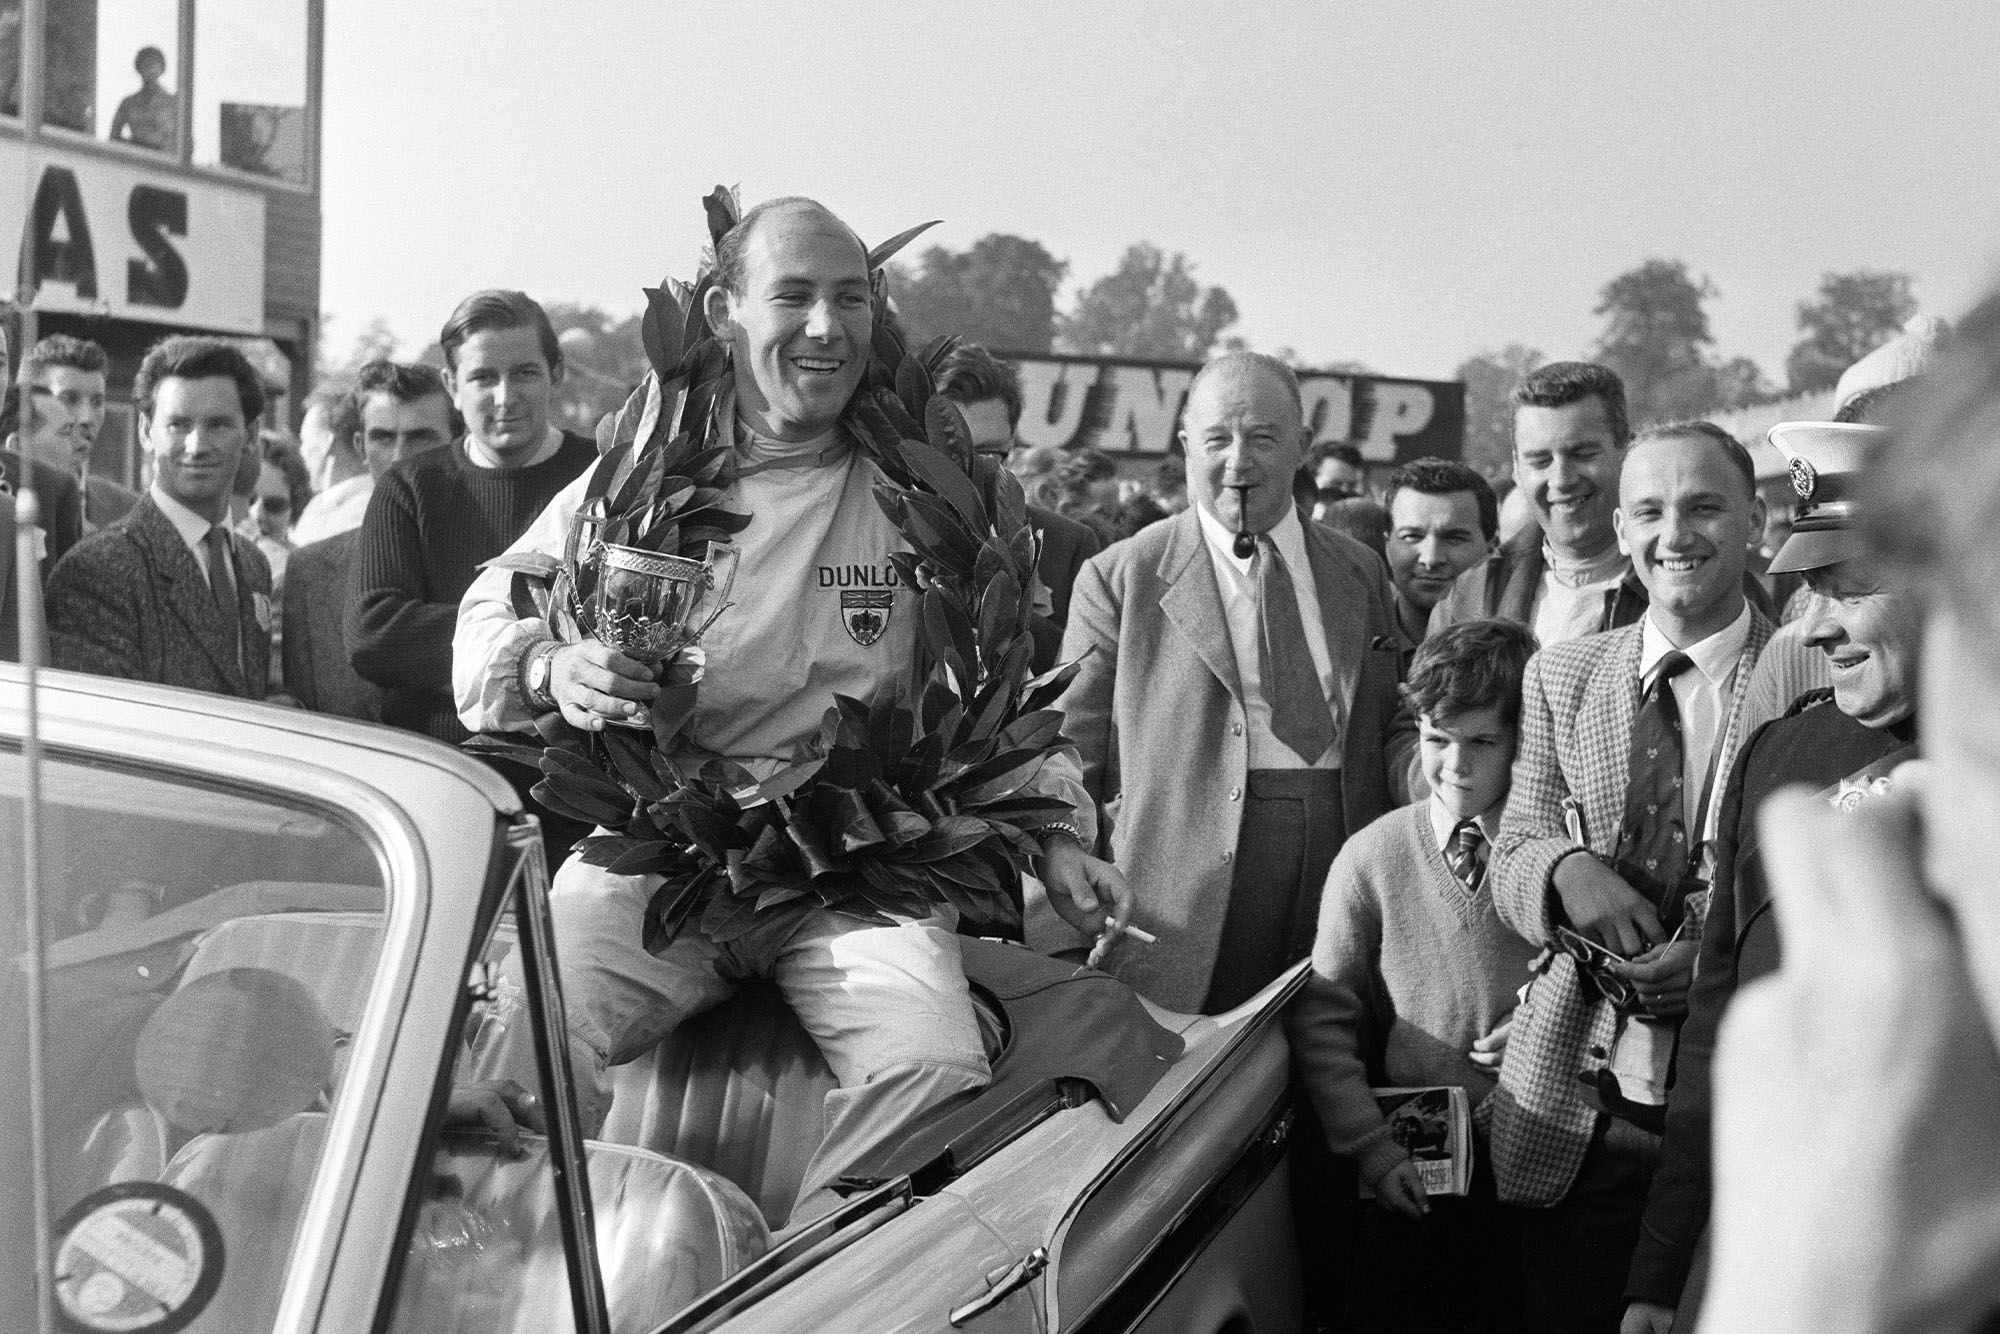 Stirling Moss, driving a Lotus-Climax, wins the Gold Cup race at Oulton Park, Cheshire, 24th September 1960. (Photo Bob Rendle/Mirrorpix/Getty Images)